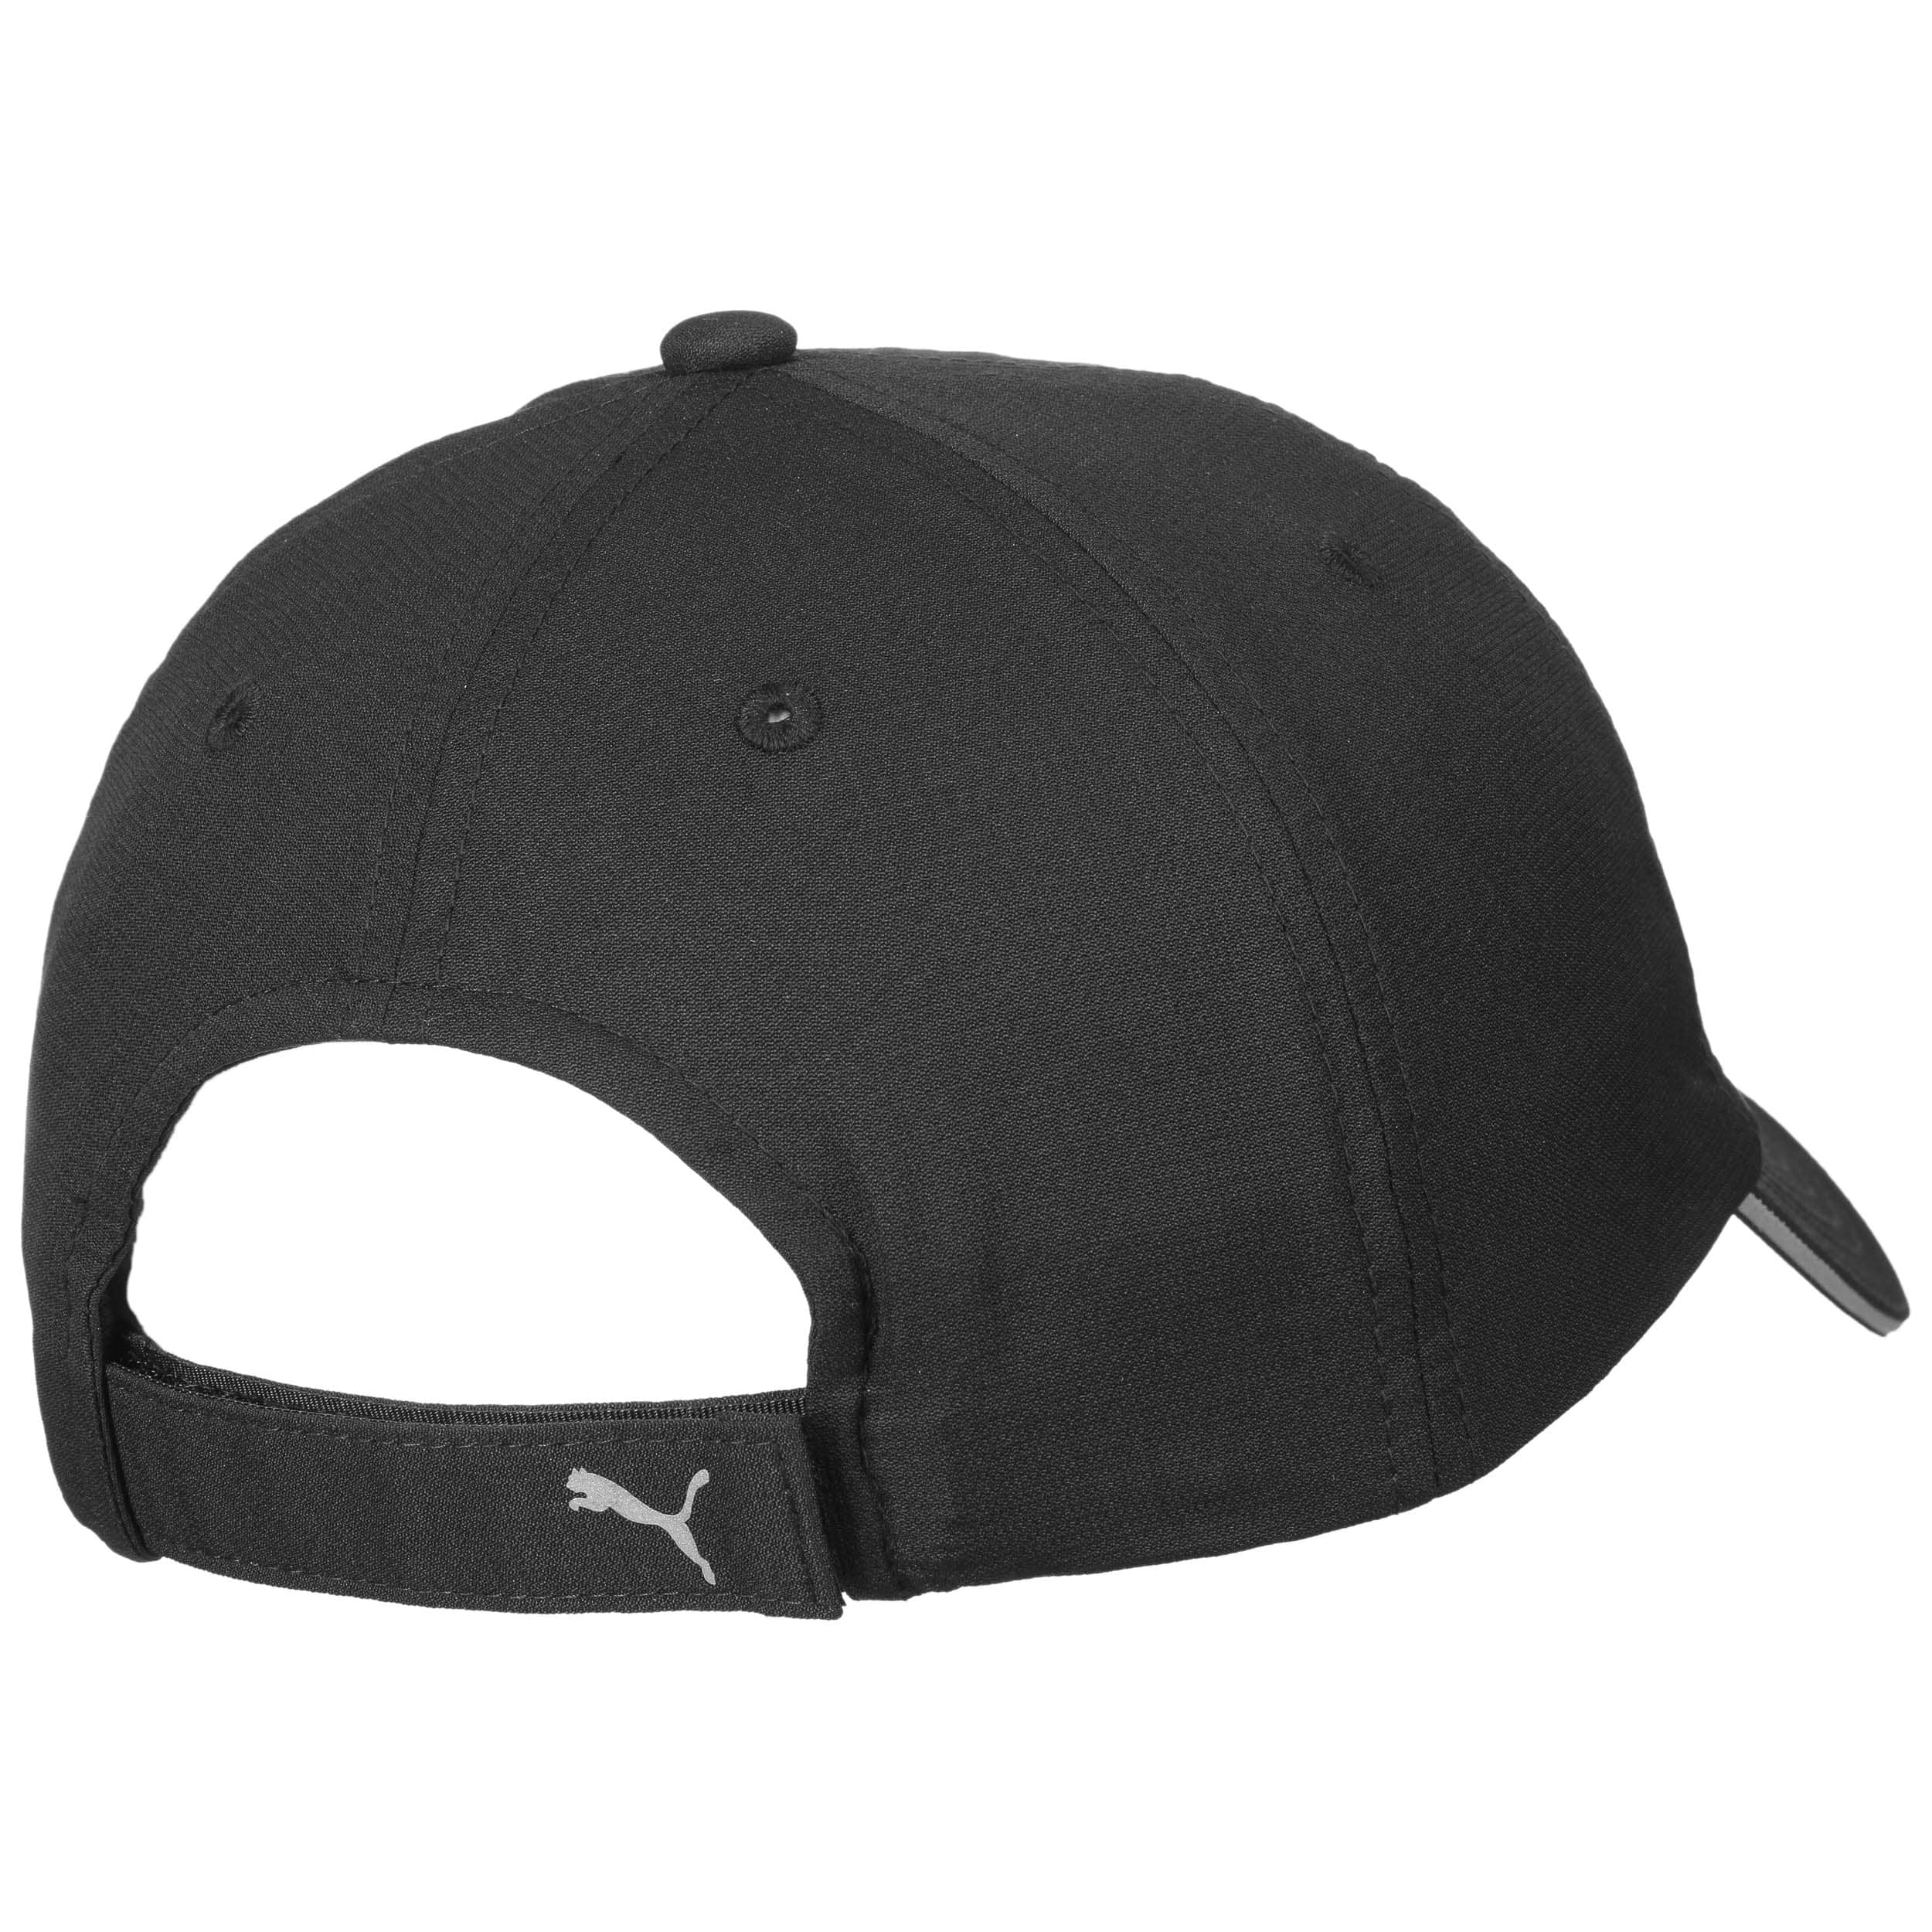 6d7f5bdbbbb ... Performance Running Cap III by PUMA - black 3 ...